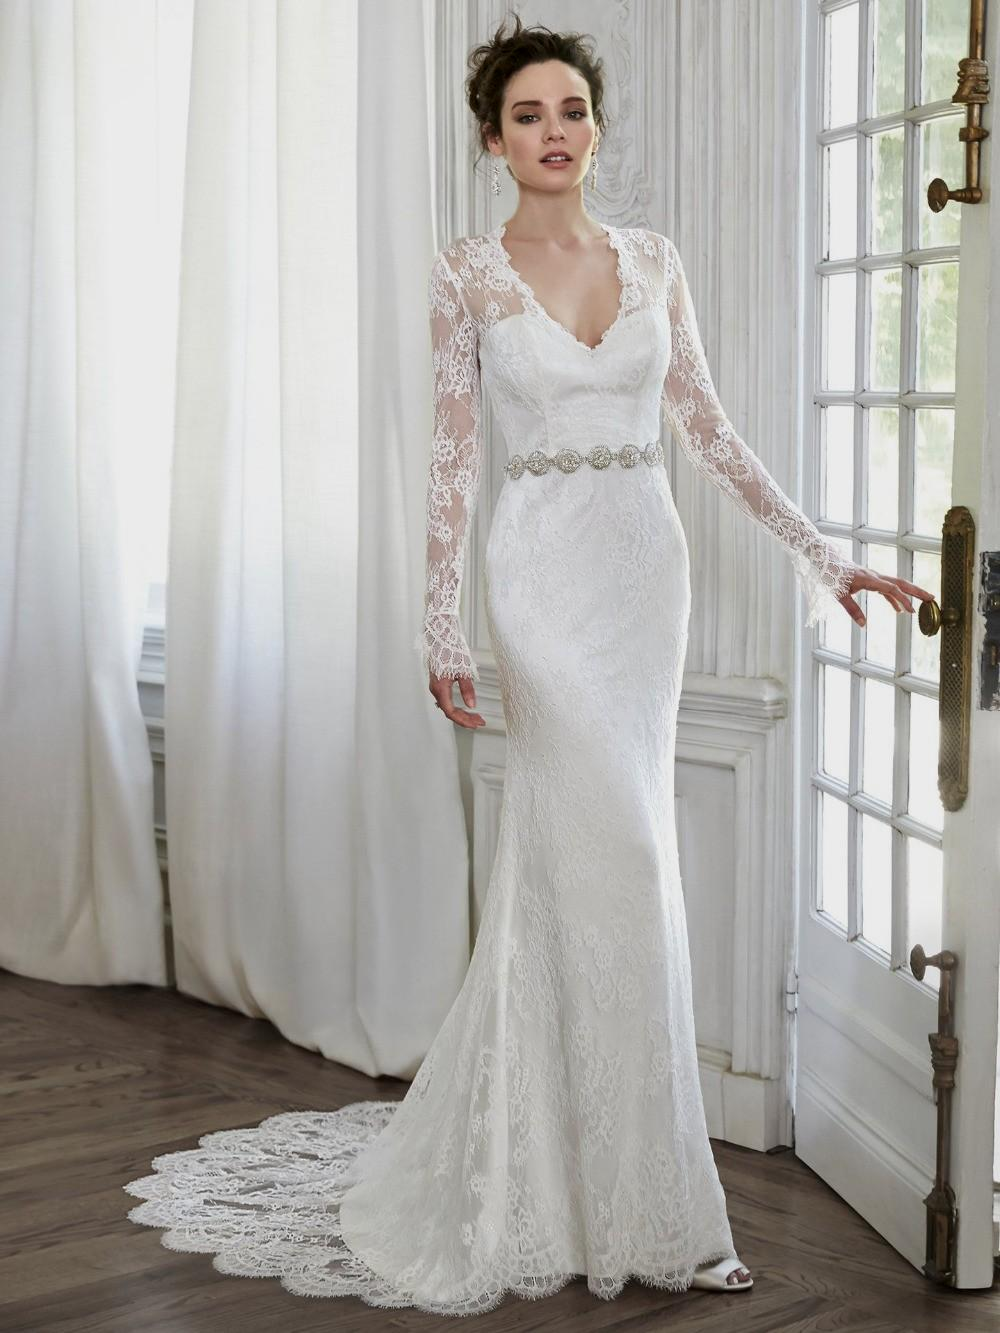 Sheath lace wedding dress with long sleeves